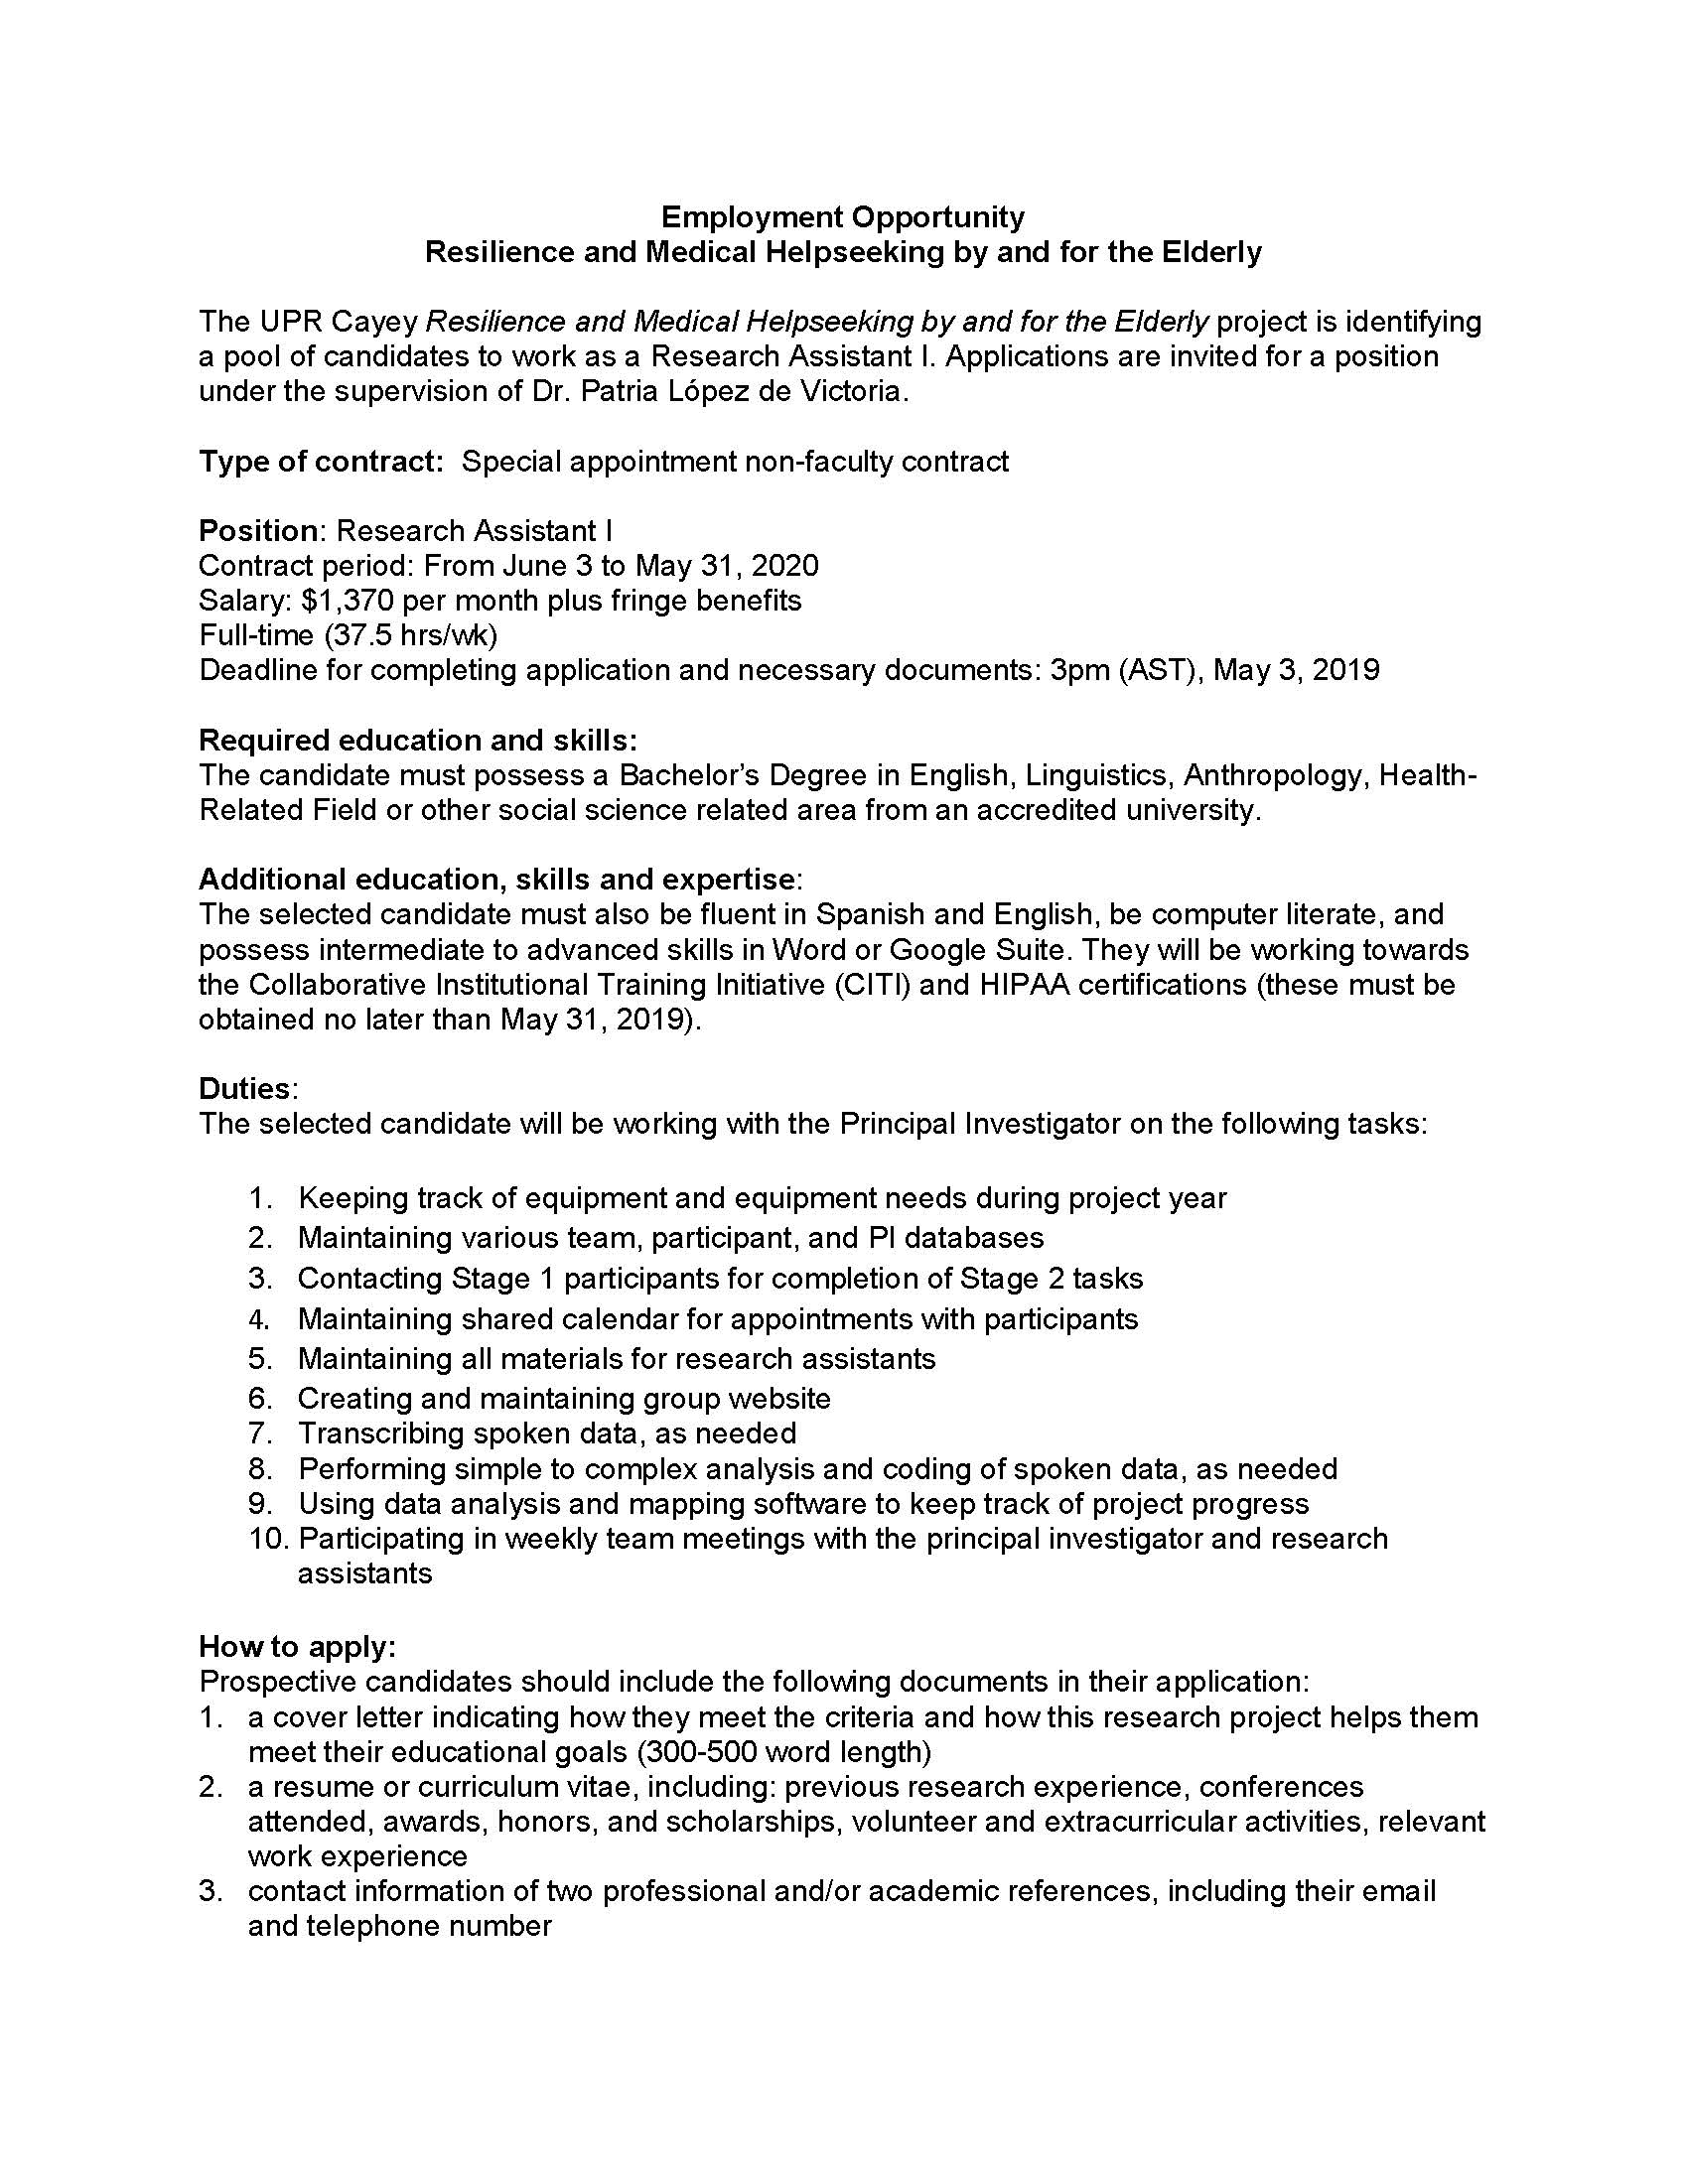 Employment Opportunity – Research Assistant I – Instituto de